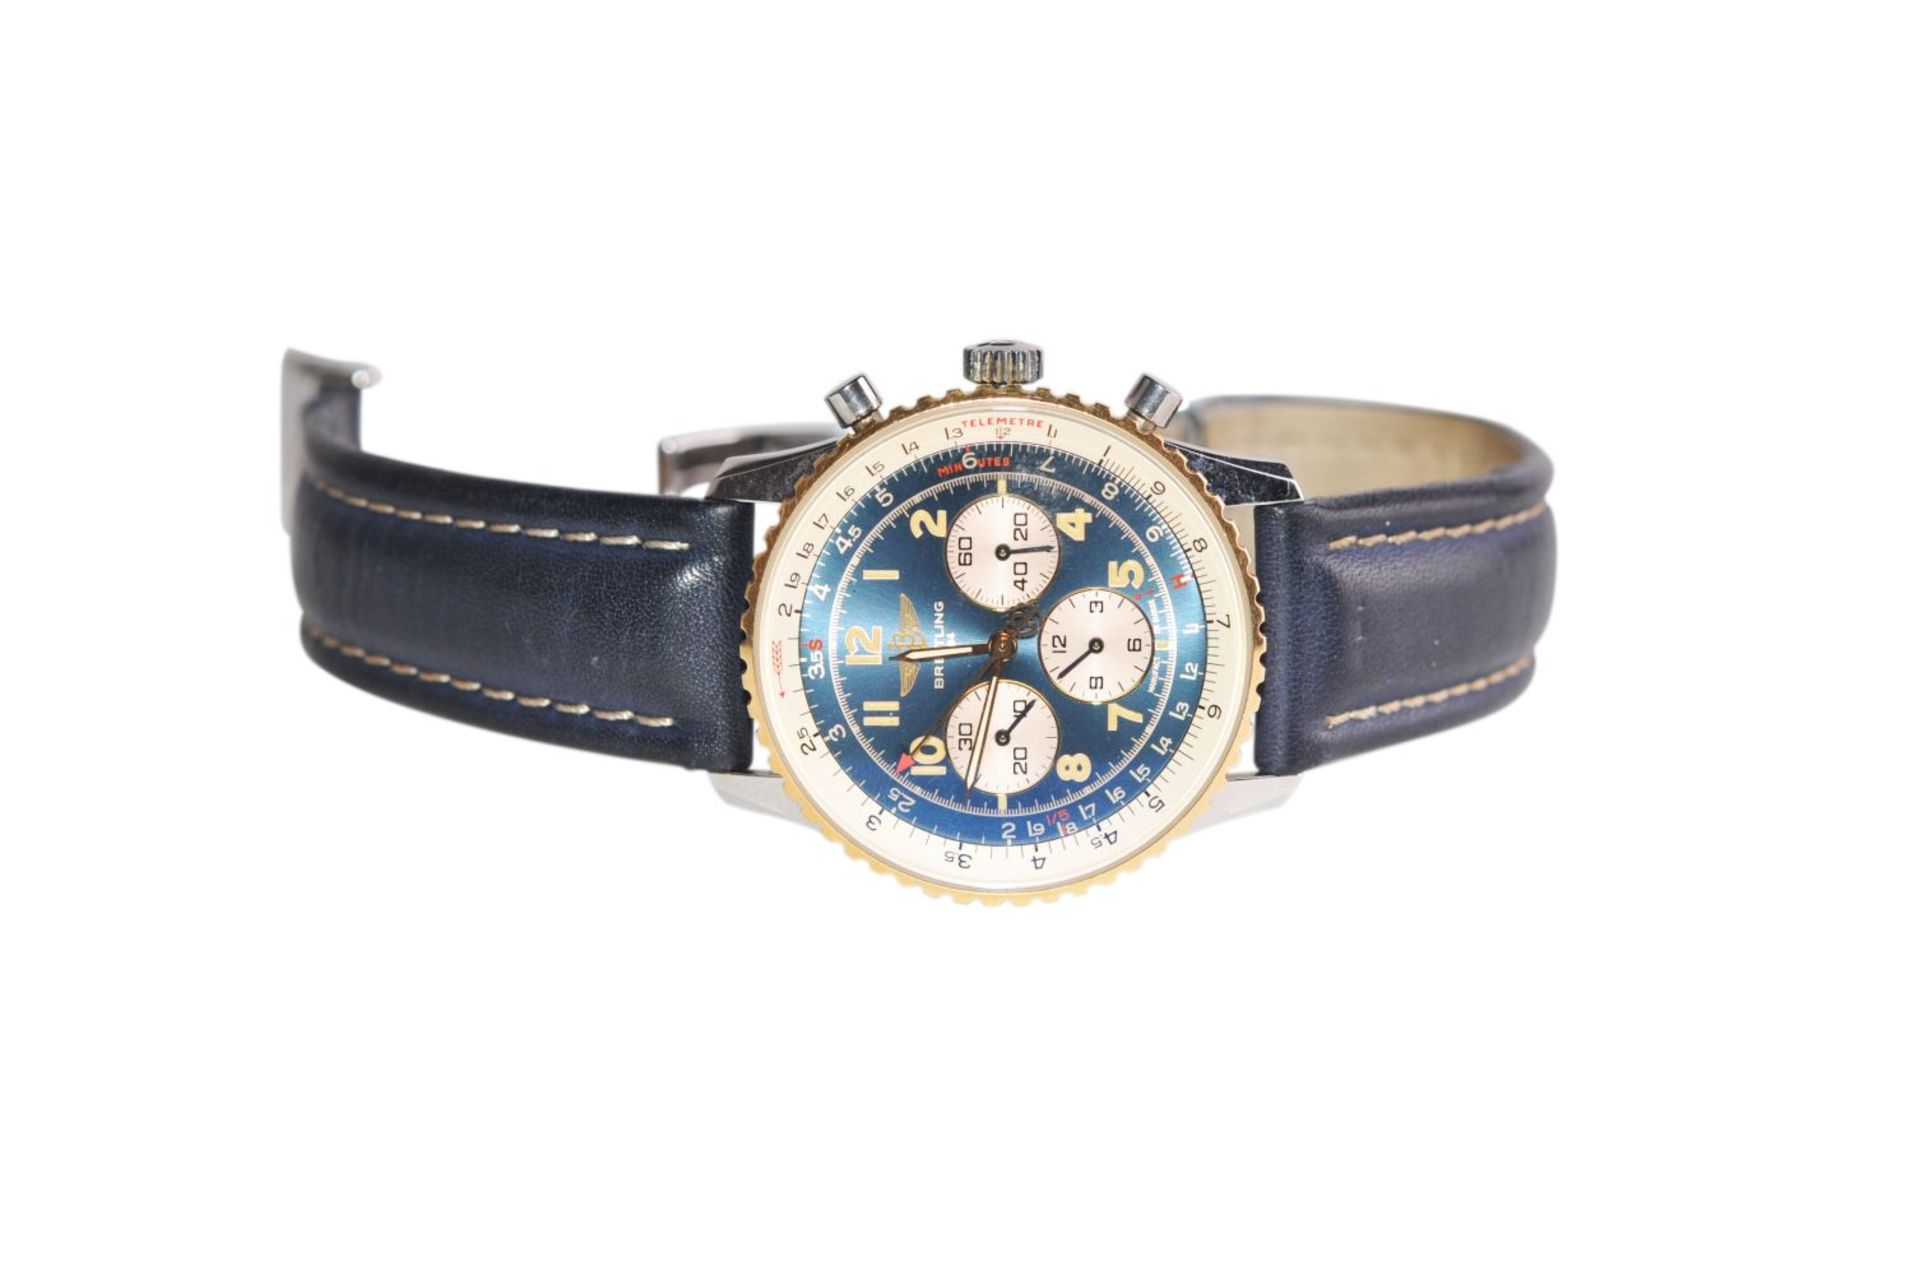 Los 19 - Breitling Navitimer38 mm Breitling Navitimer steel gold automatic with chronograph, sapphire